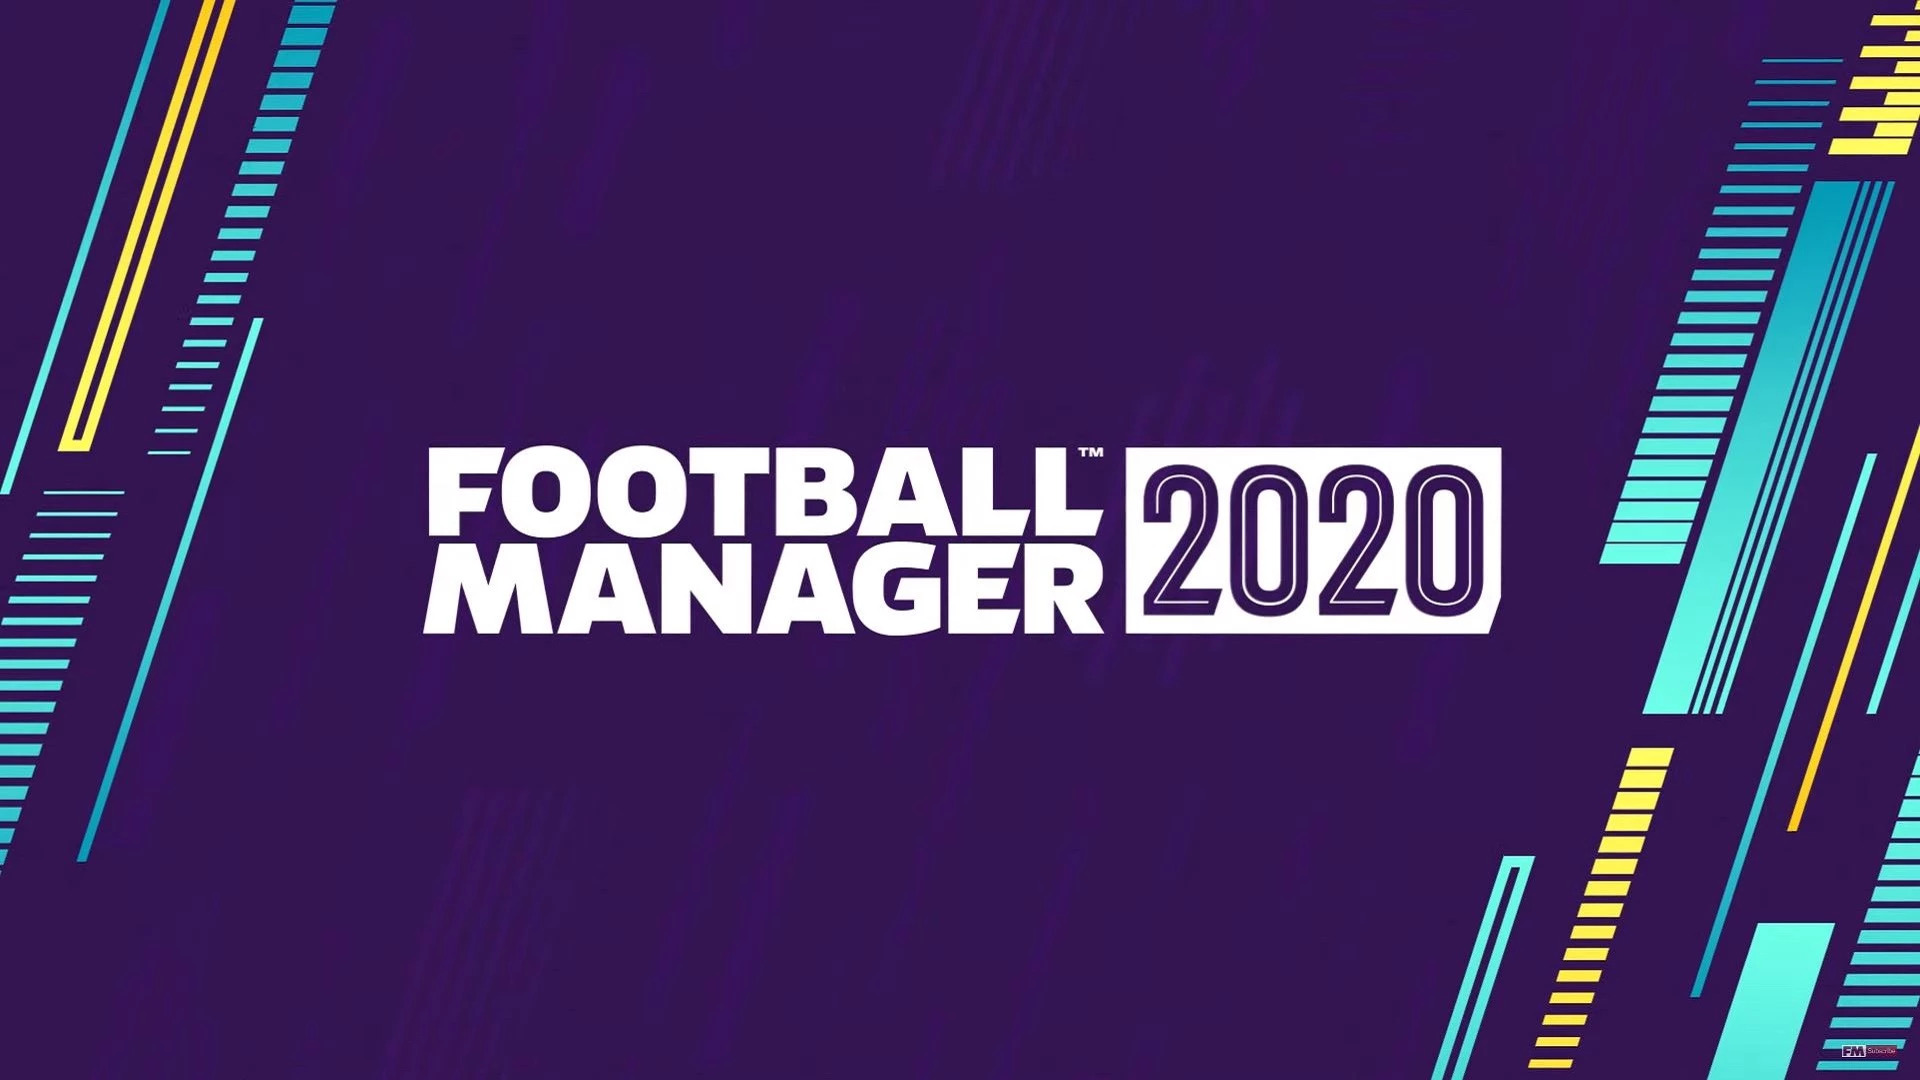 Football Manager 2020 est disponible gratuitement